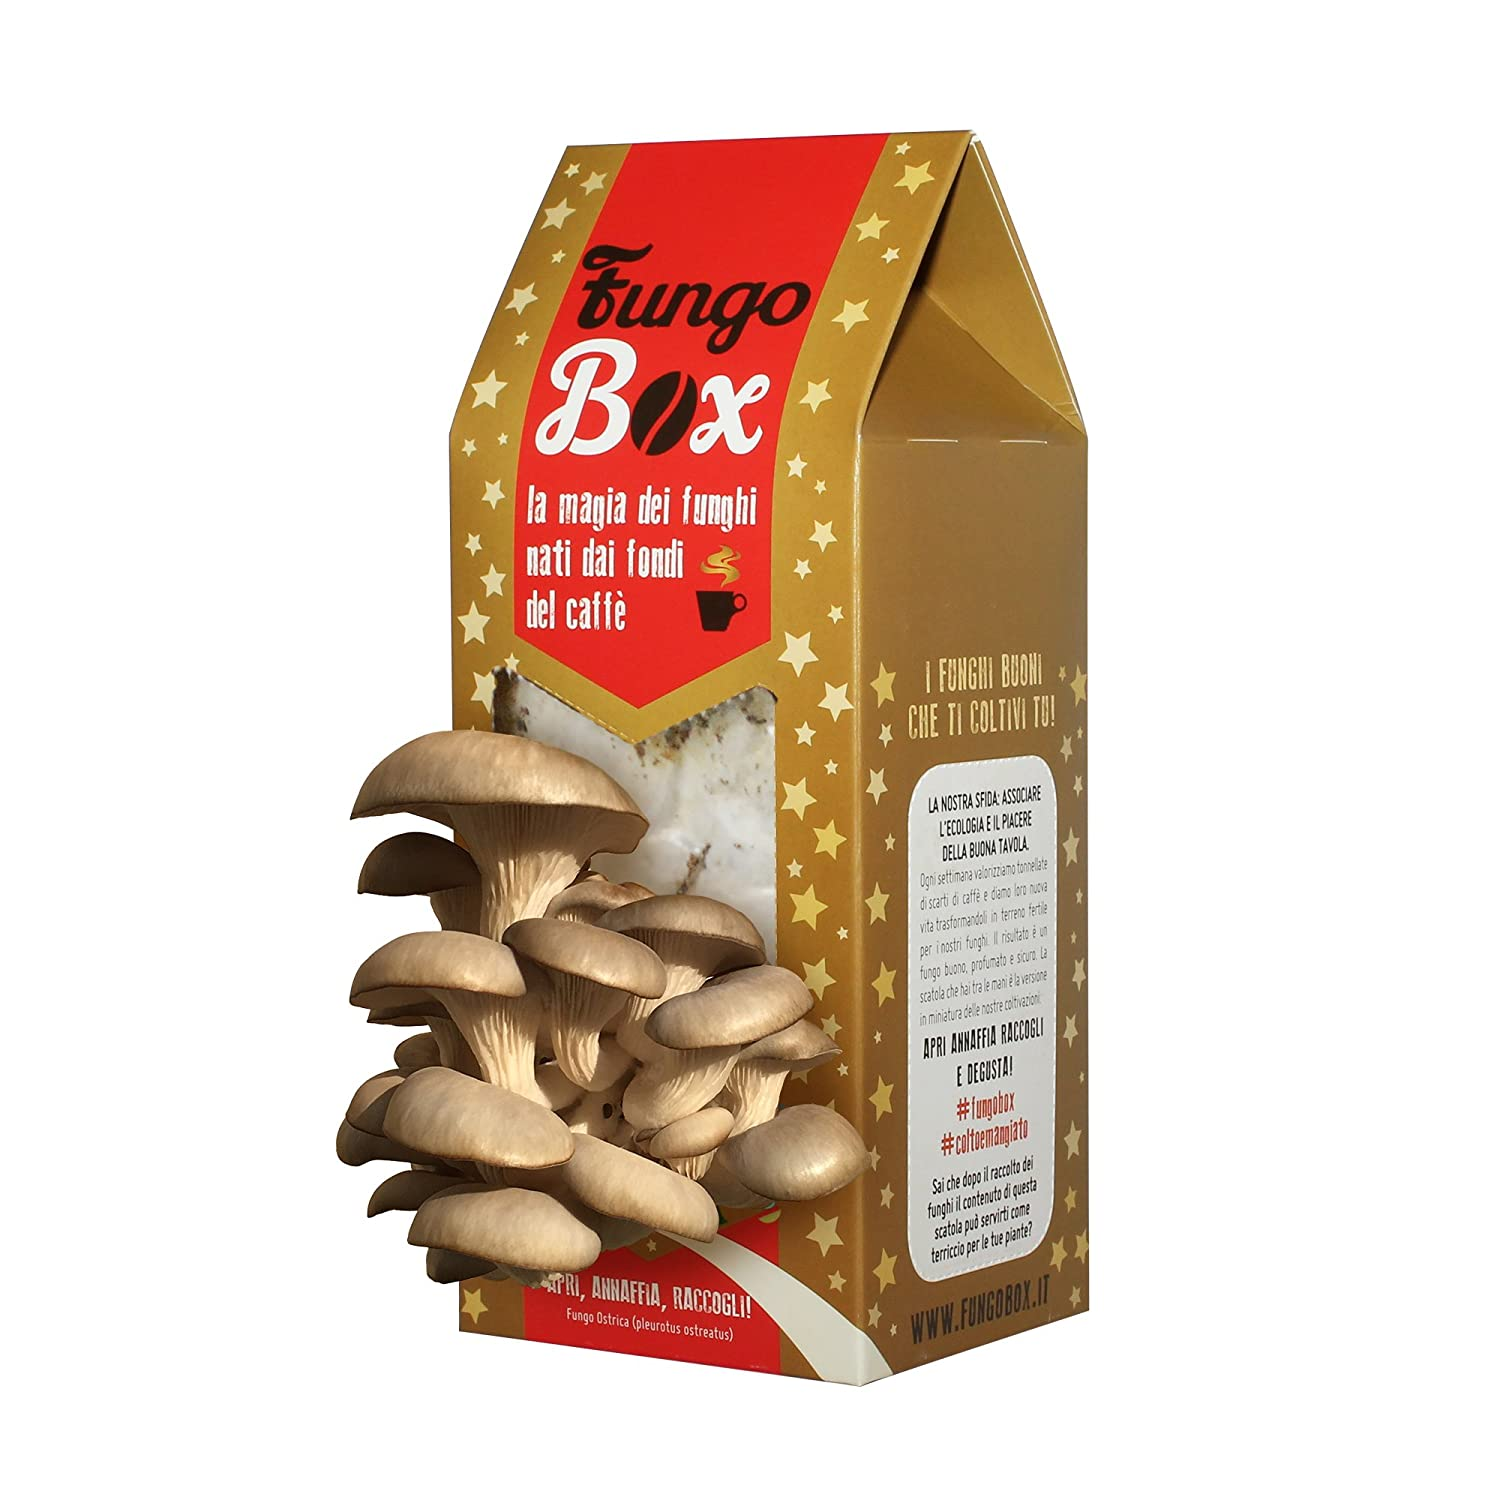 Fungo Box Christmas: Kit for Growing Oyster Mushrooms at Home (Edible and Good), from Coffee Espresso Grounds Upcycle Italia